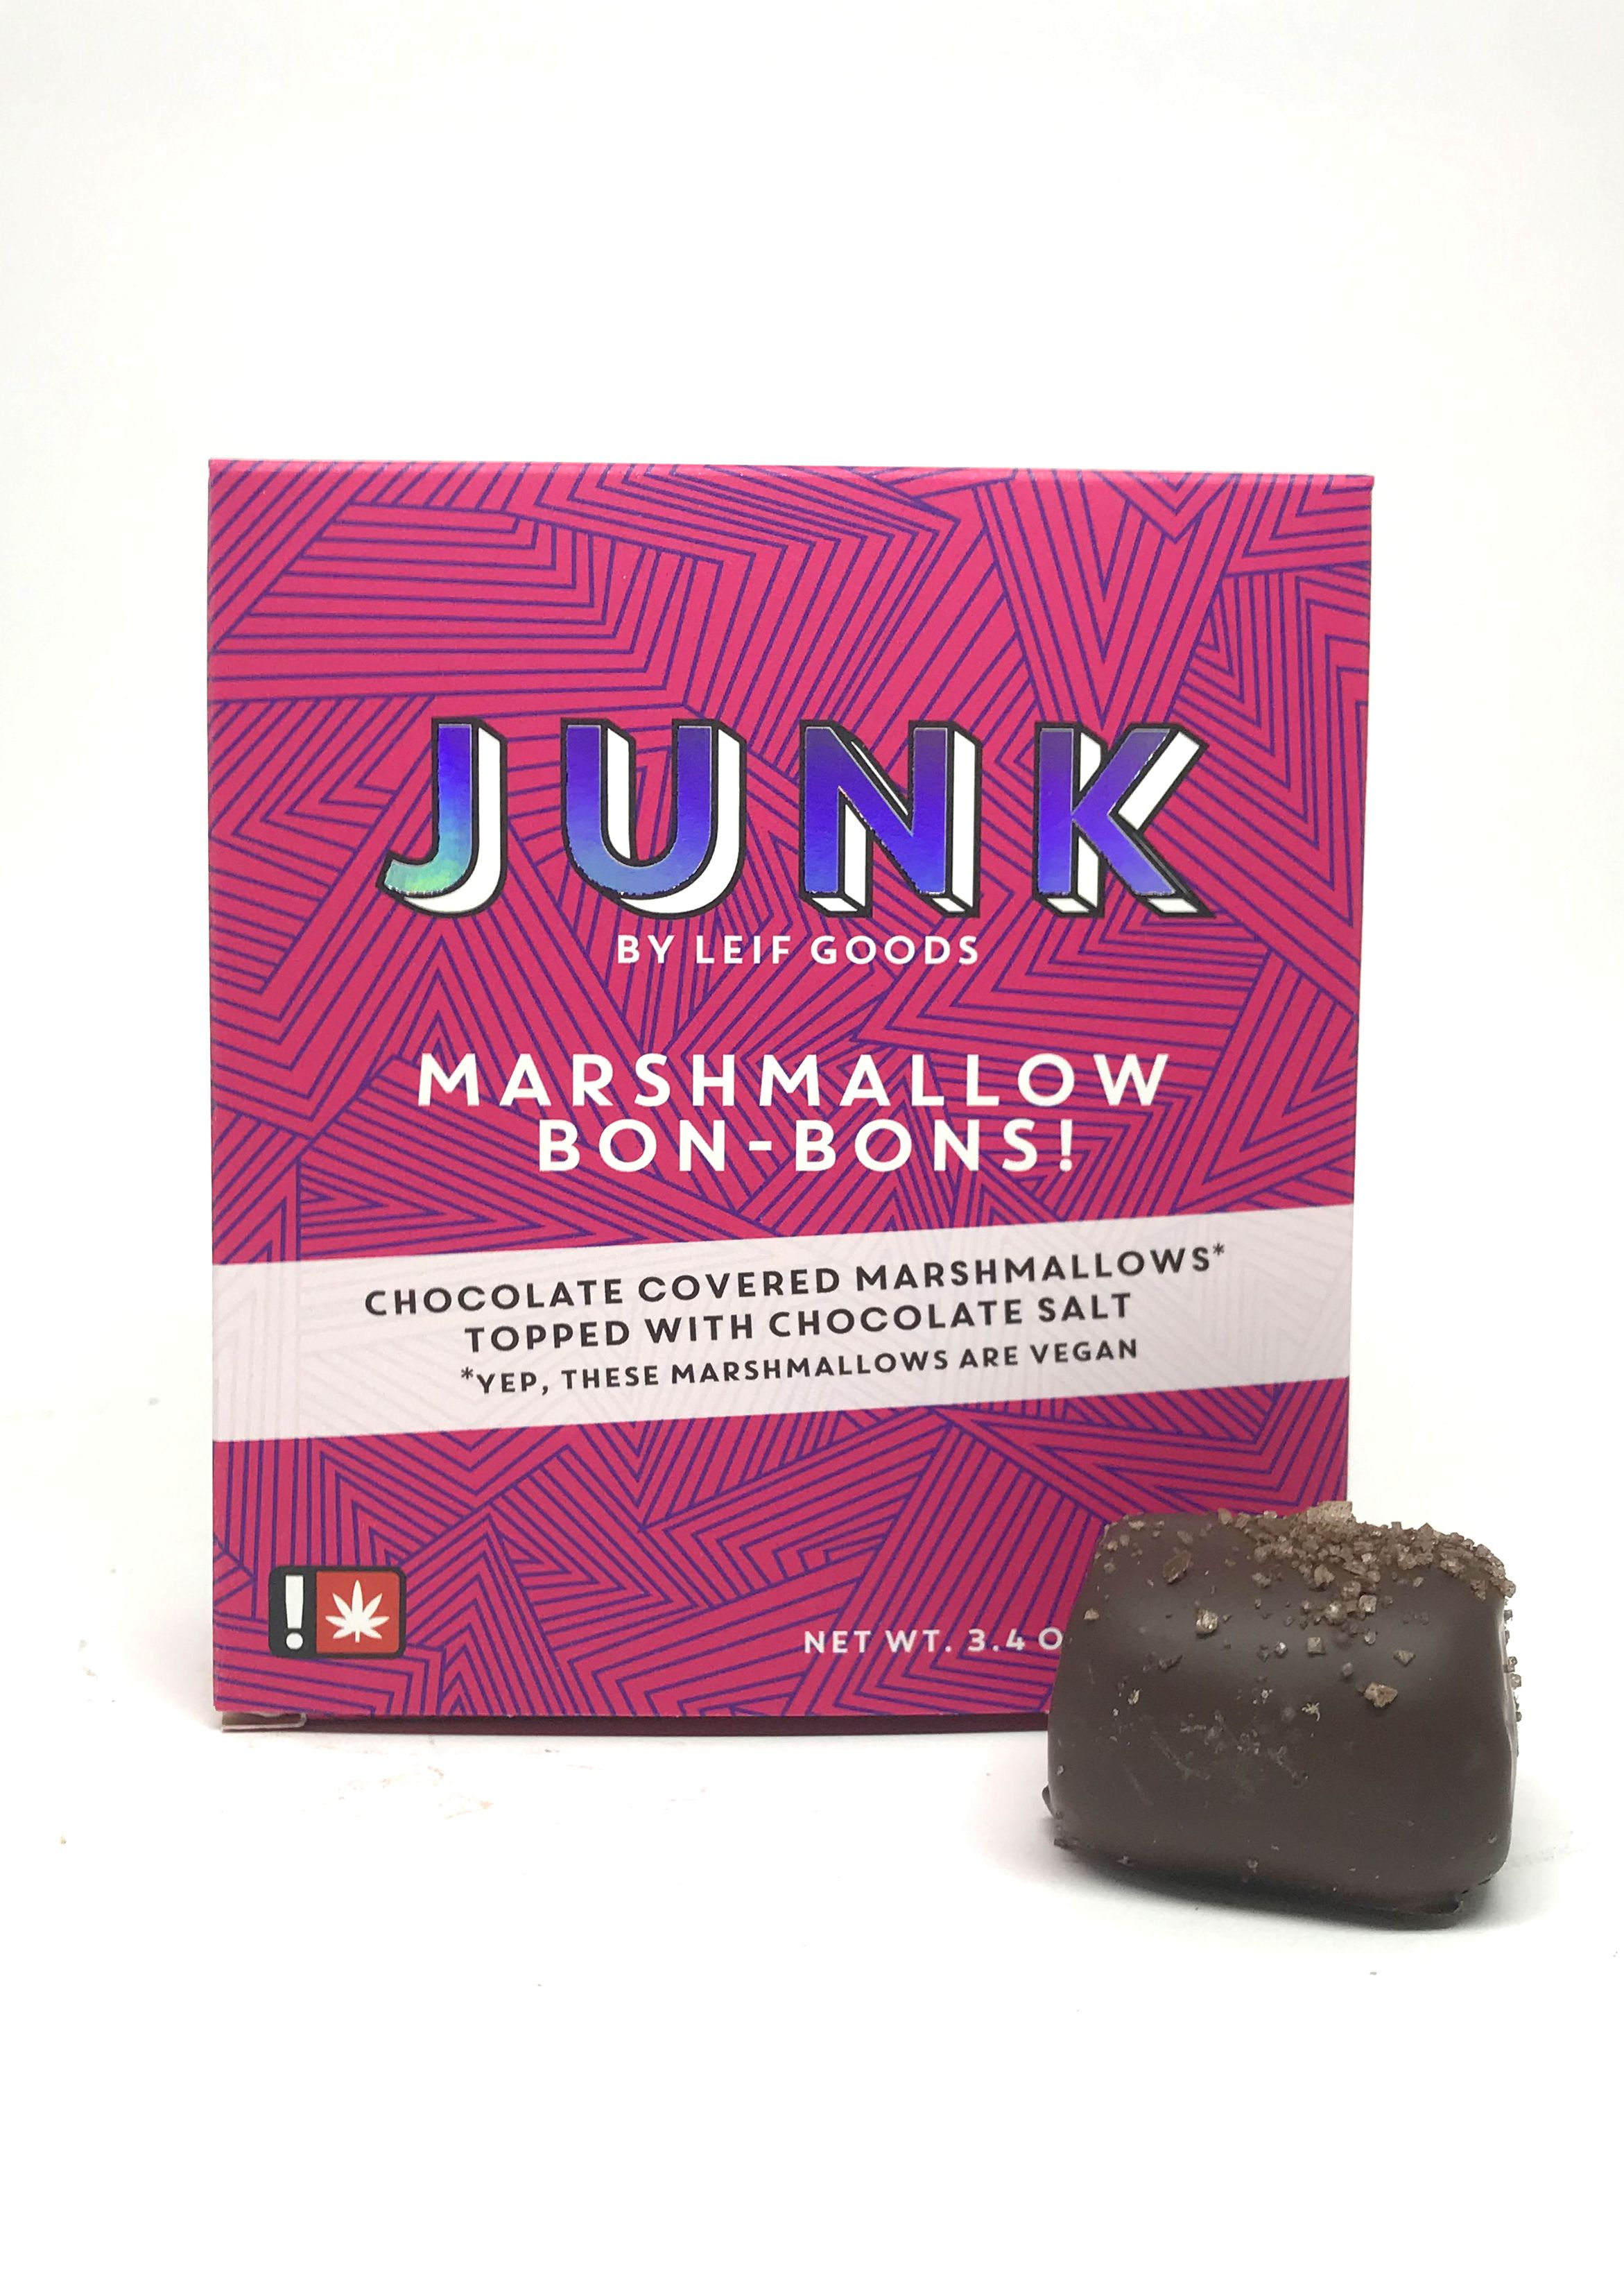 JUNK - Marshmallow Bon-Bons! (Vegan) *Was 25*